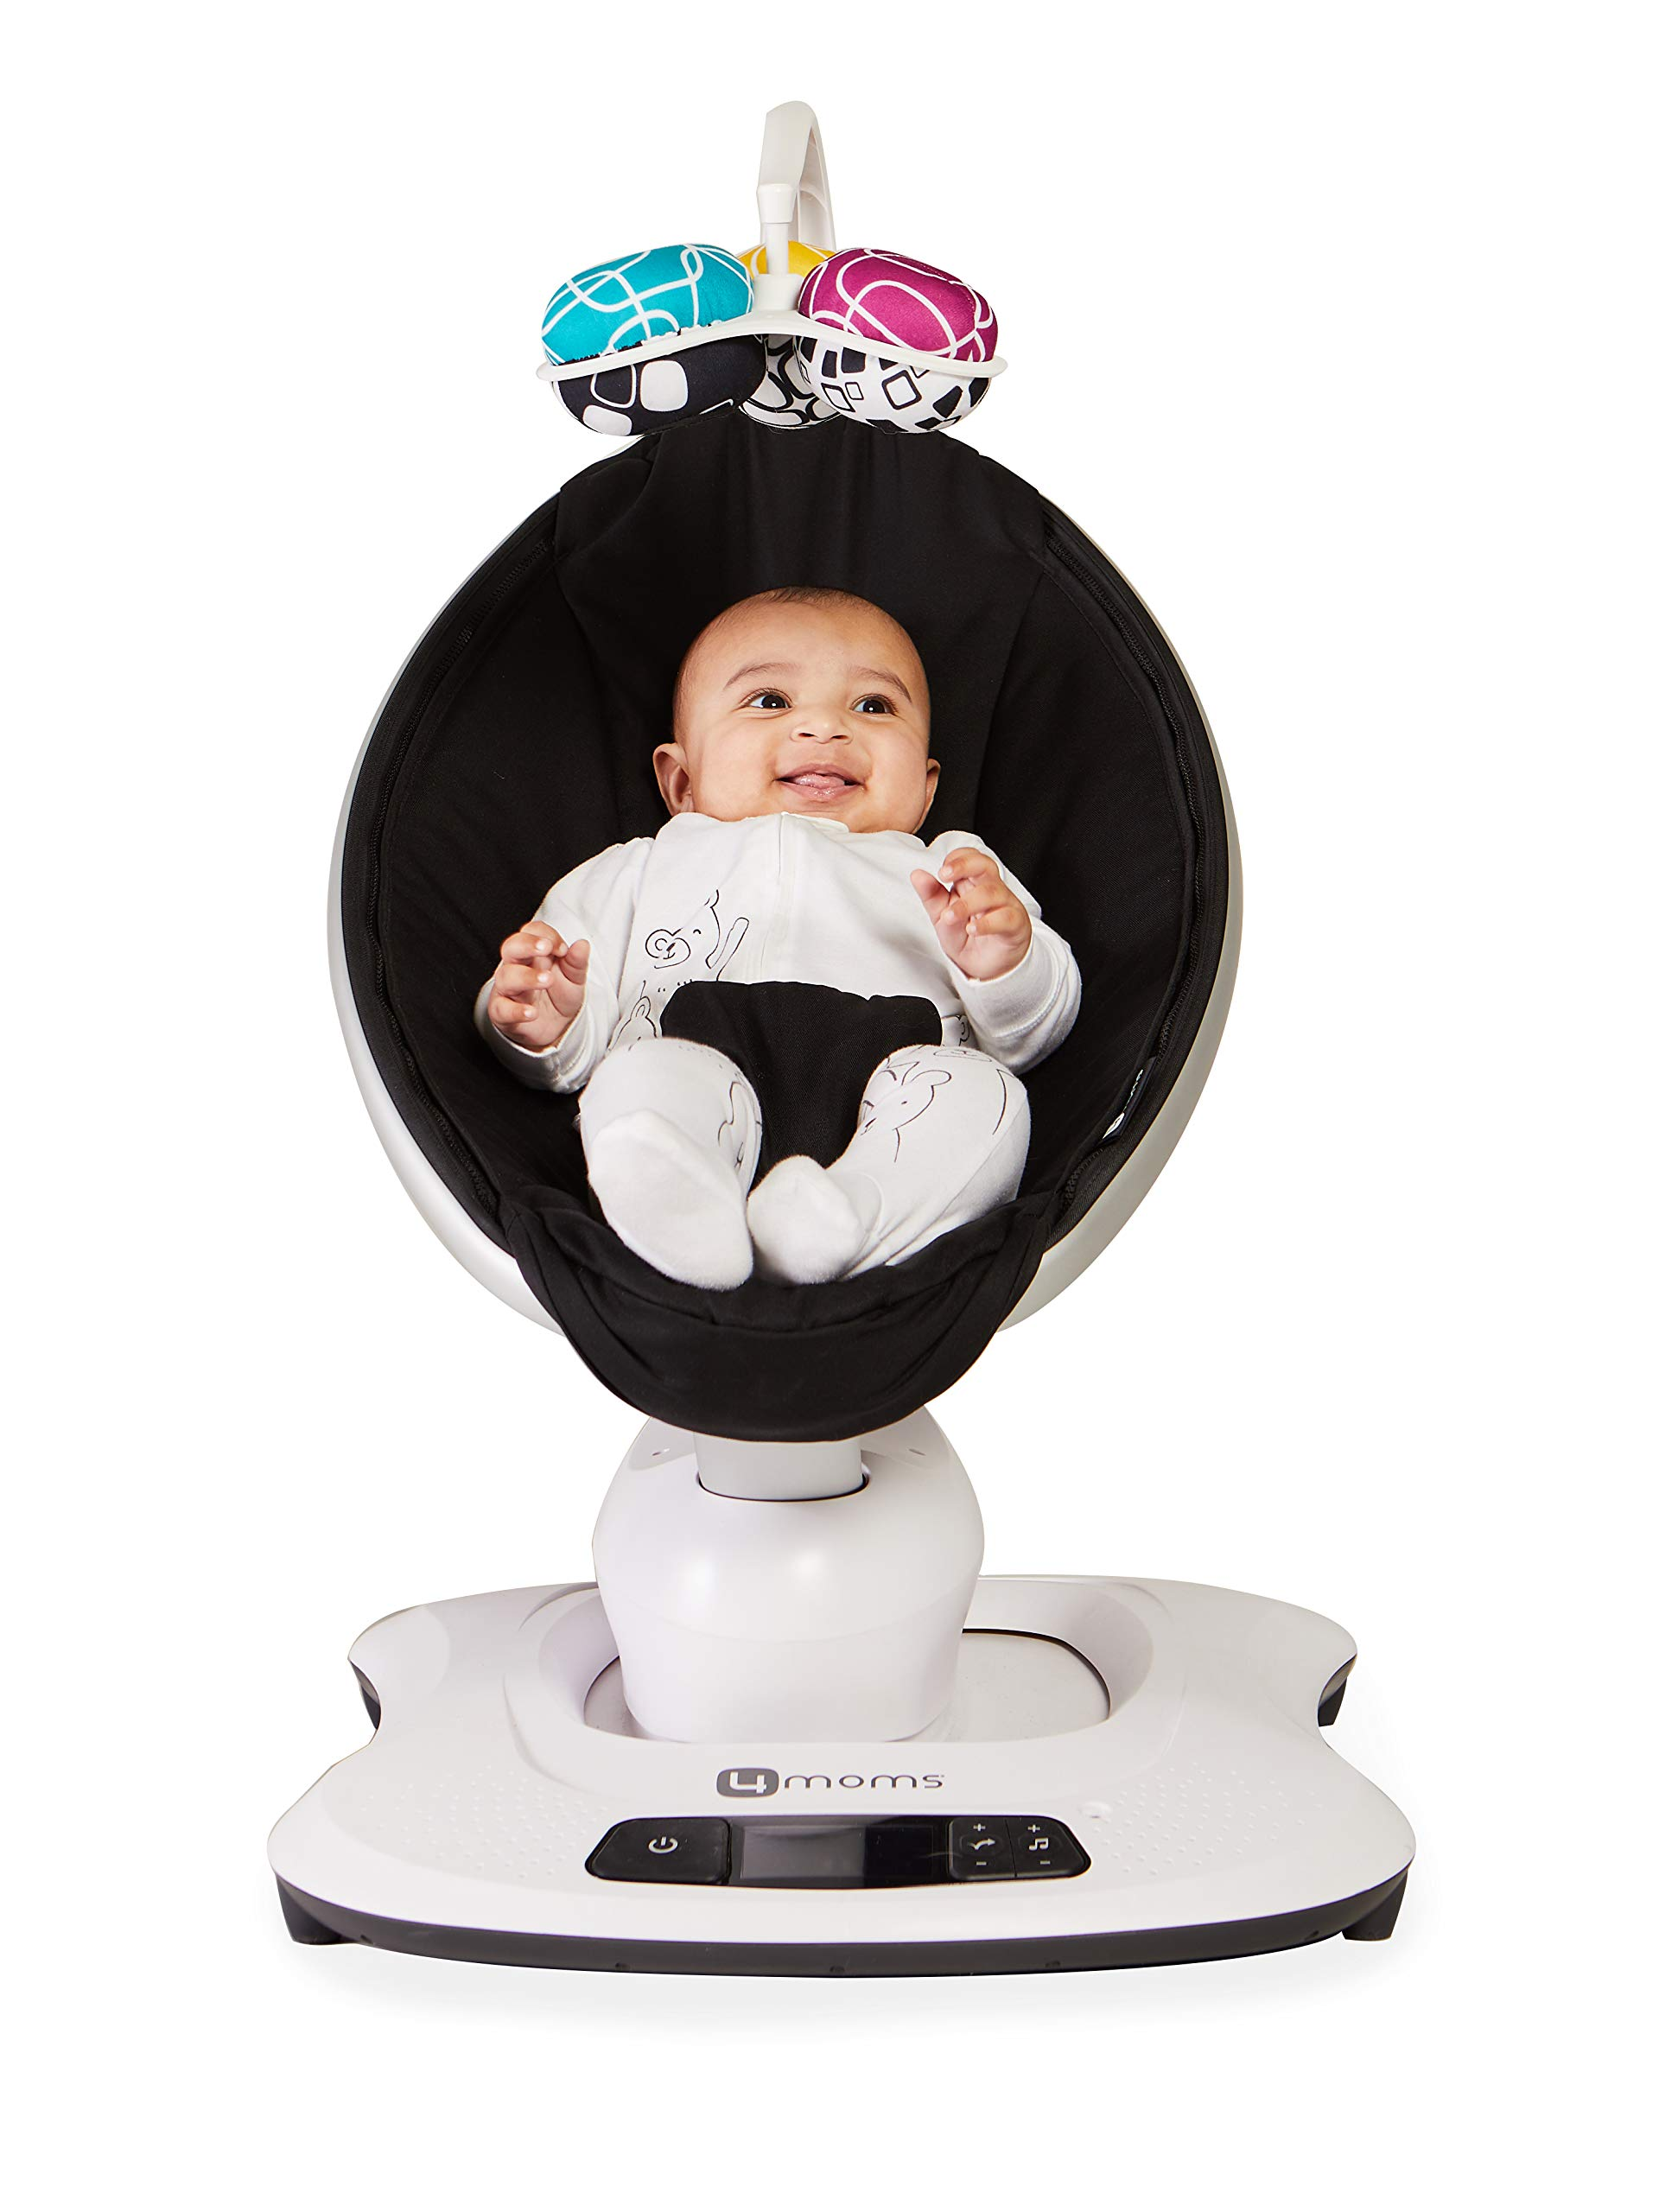 4moms mamaRoo 4 Bluetooth-Enabled high-tech Baby Swing – Classic Nylon Fabric with 5 Unique motions by 4moms (Image #8)